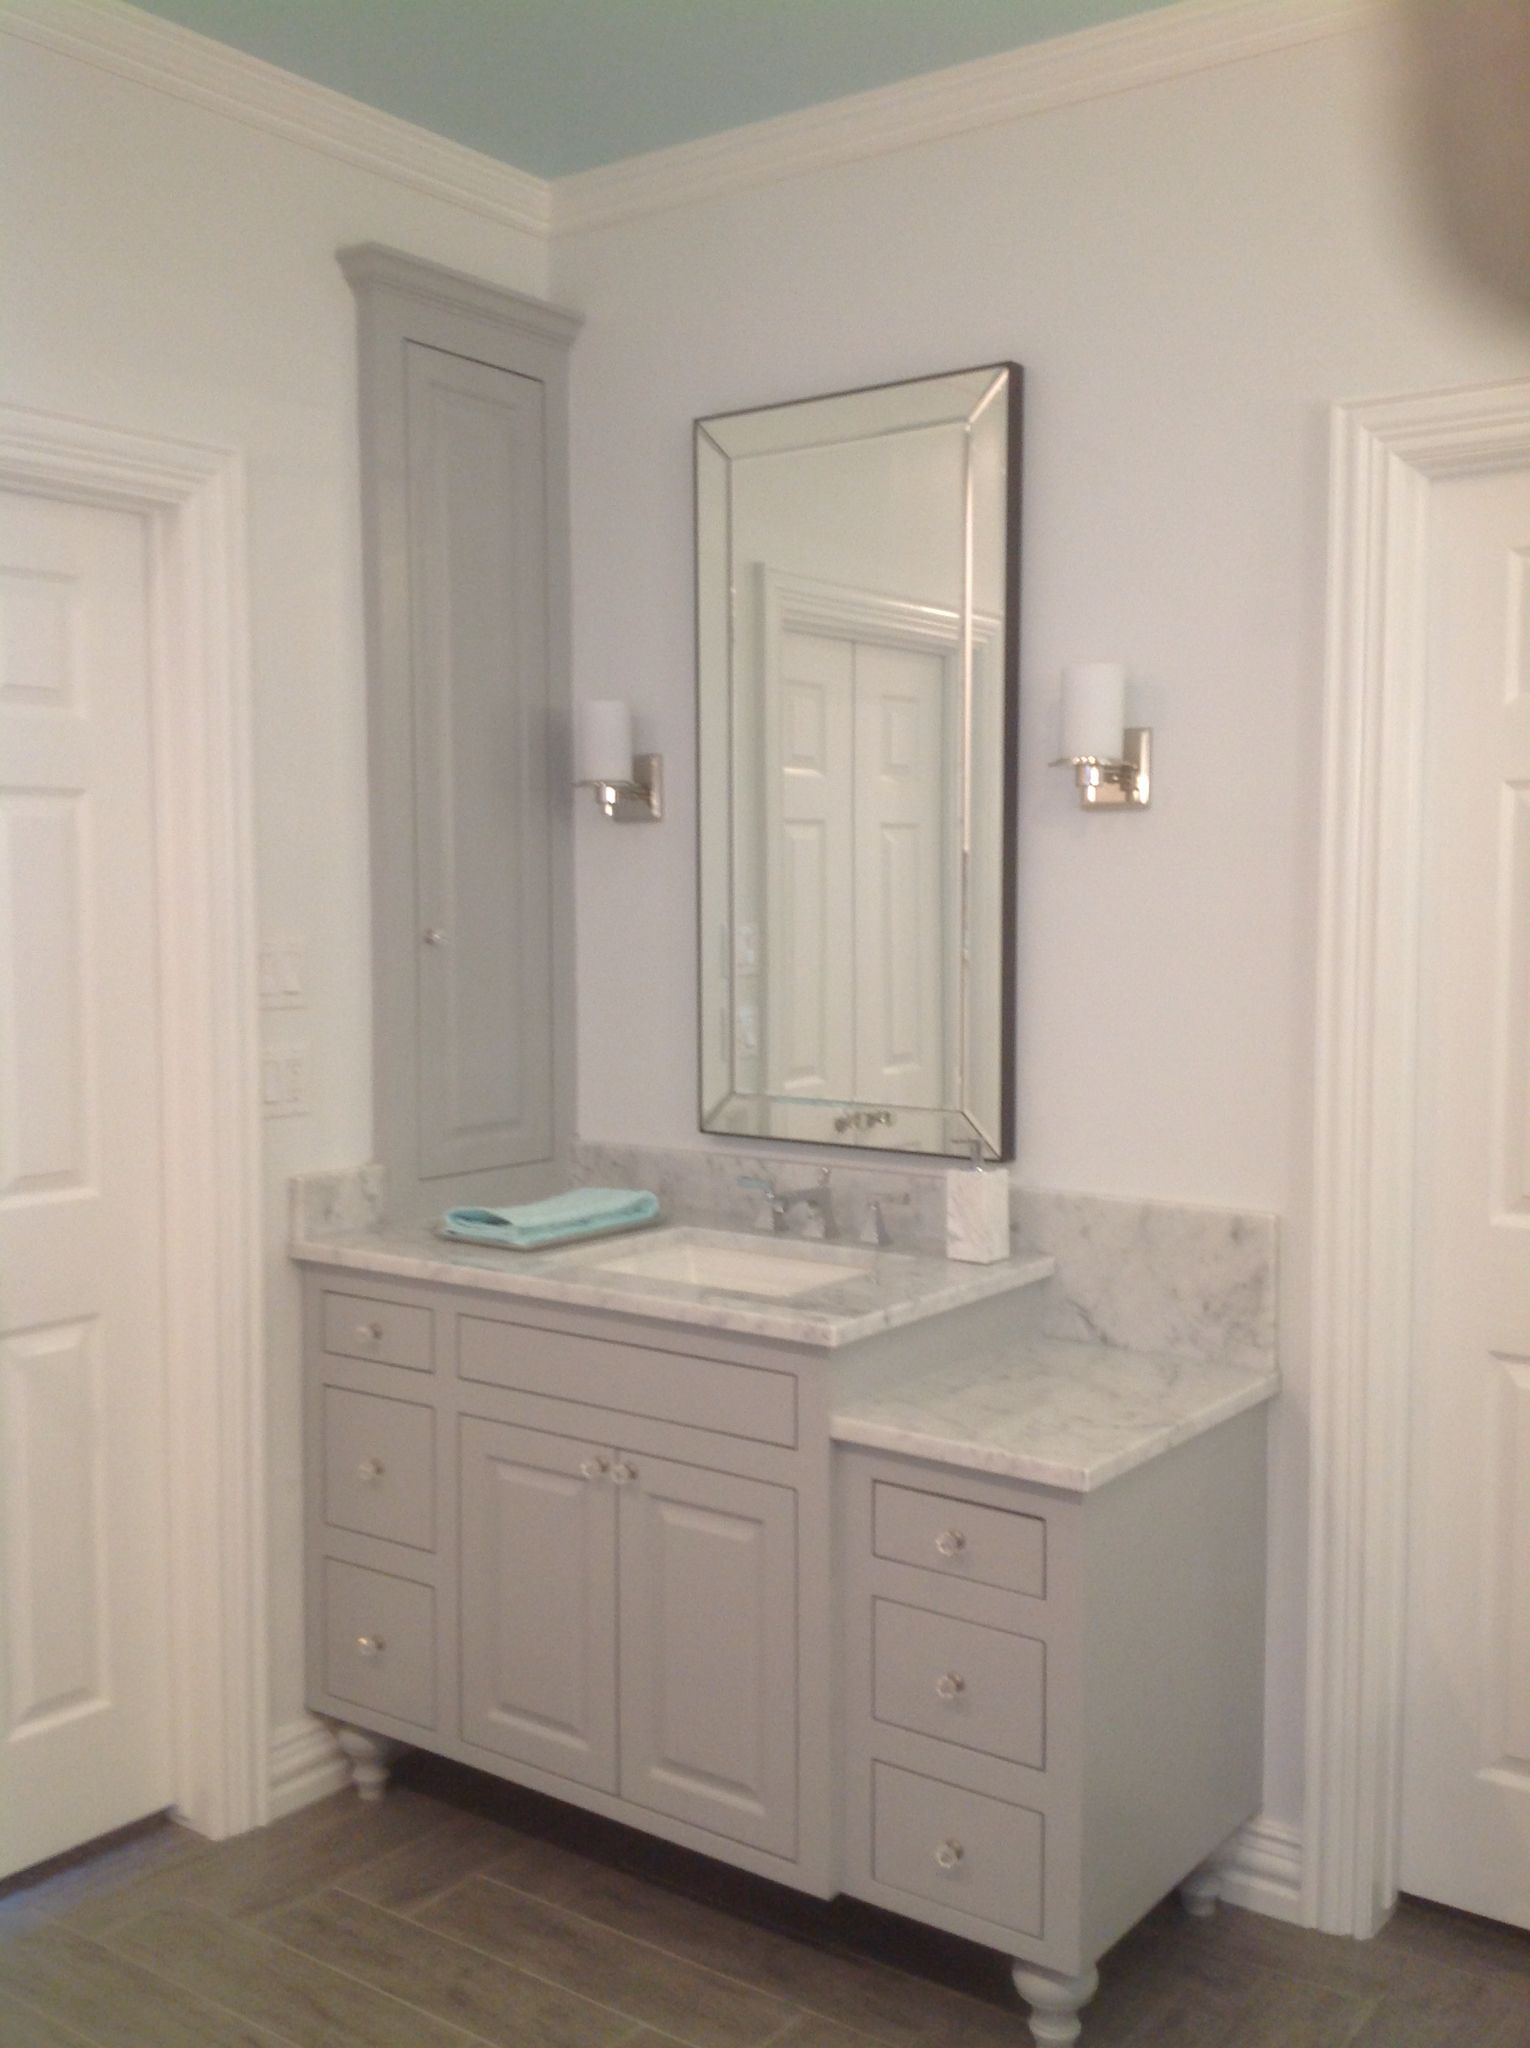 vanity bathroom feel your the vanities style and design pottery look diy change to barn of